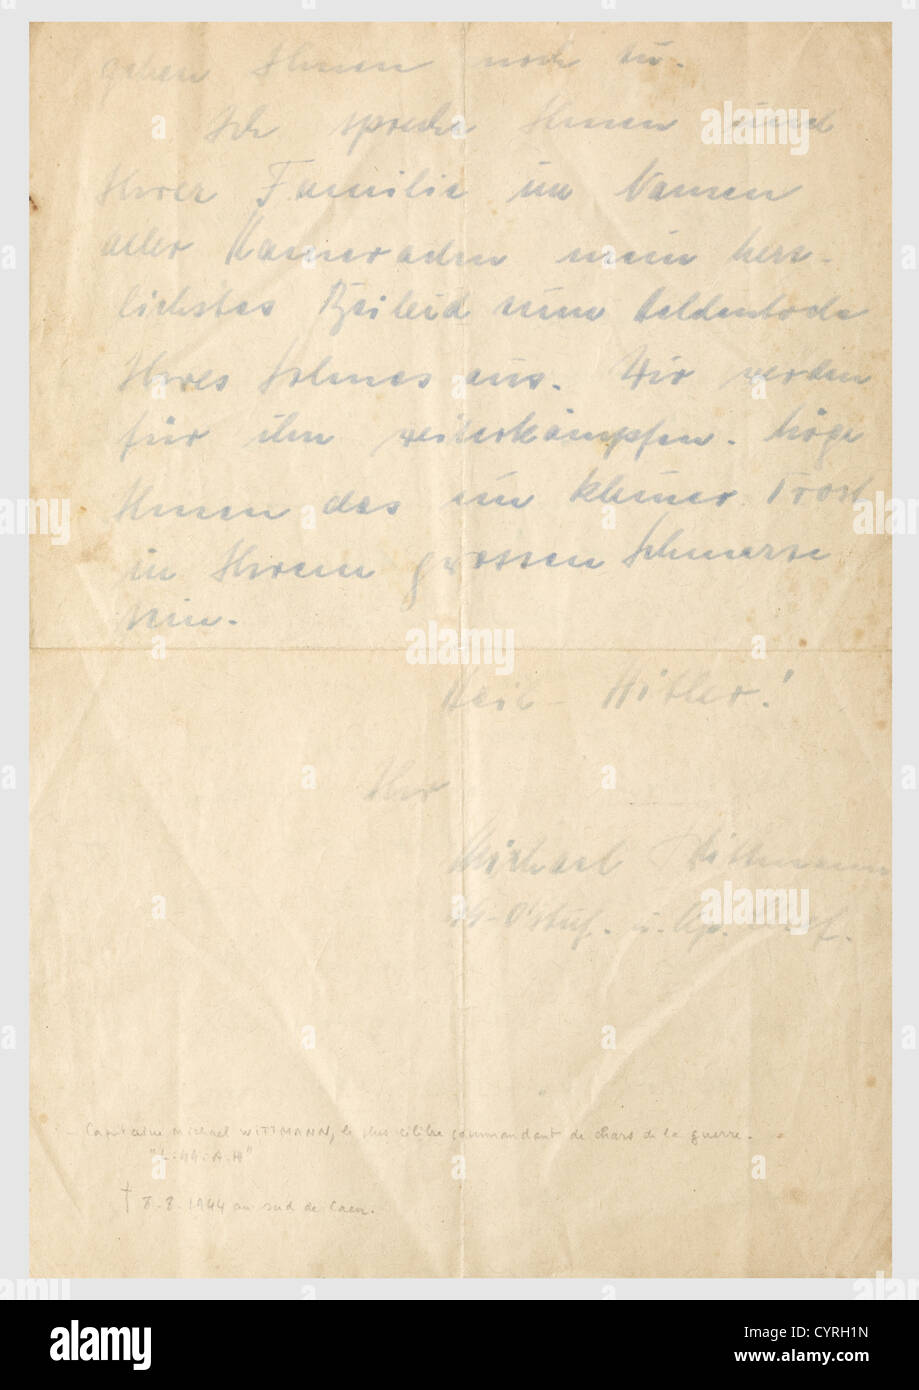 Michael Wittmann (1914 - 1944), a signed letter of condolence to the father of a soldier killed in action Wittmann - Stock Image